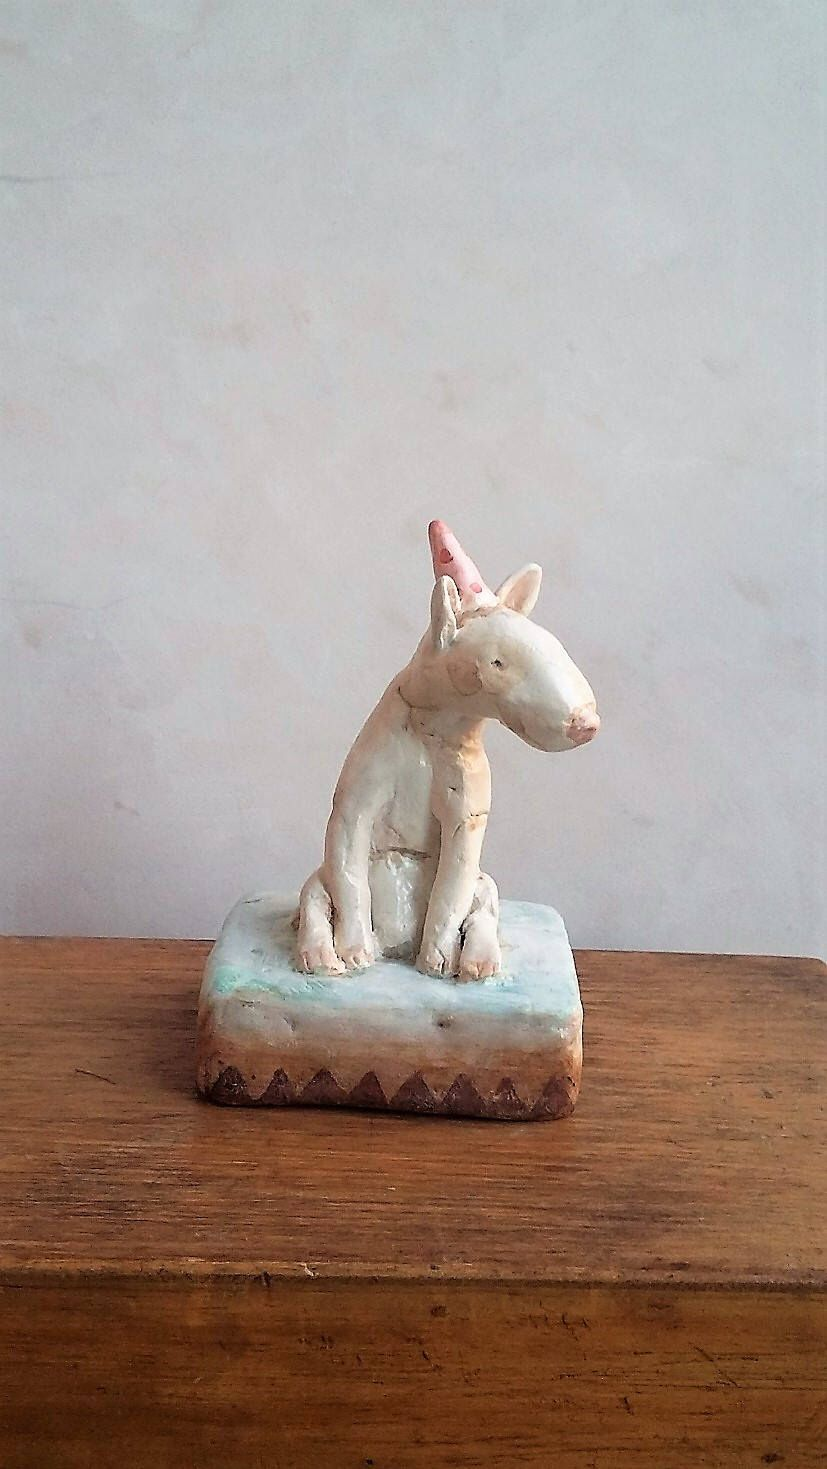 Little art sculpture, air dry clay animal figure. by